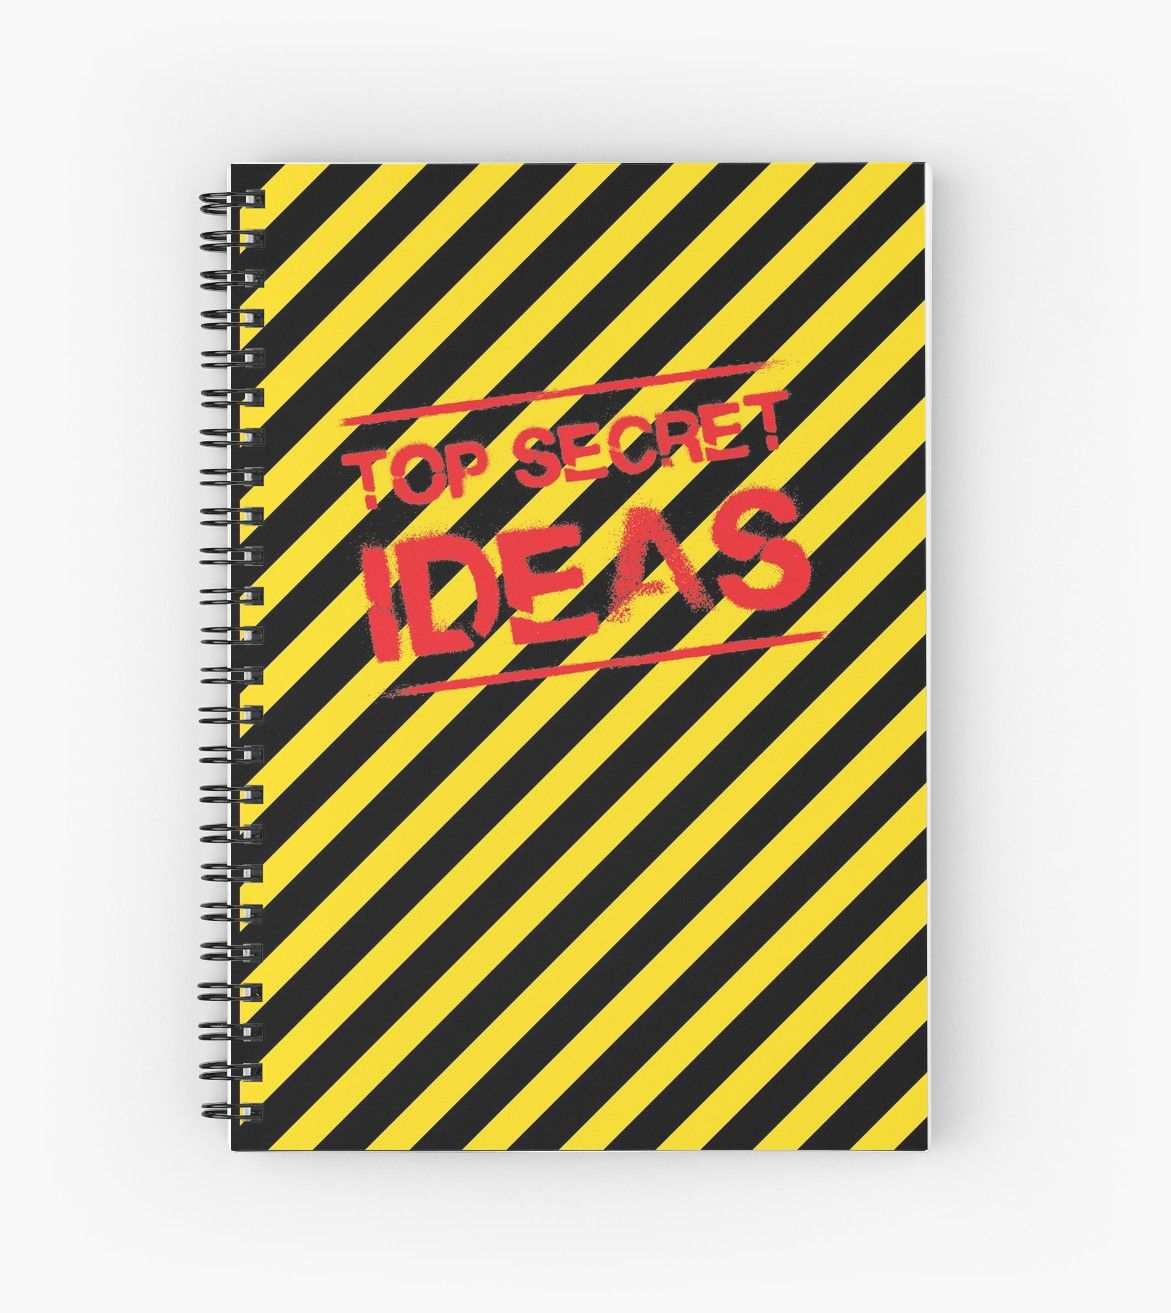 Funny notebook for all your  Top Secret  ideas!  sc 1 st  Pinterest & Funny notebook for all your